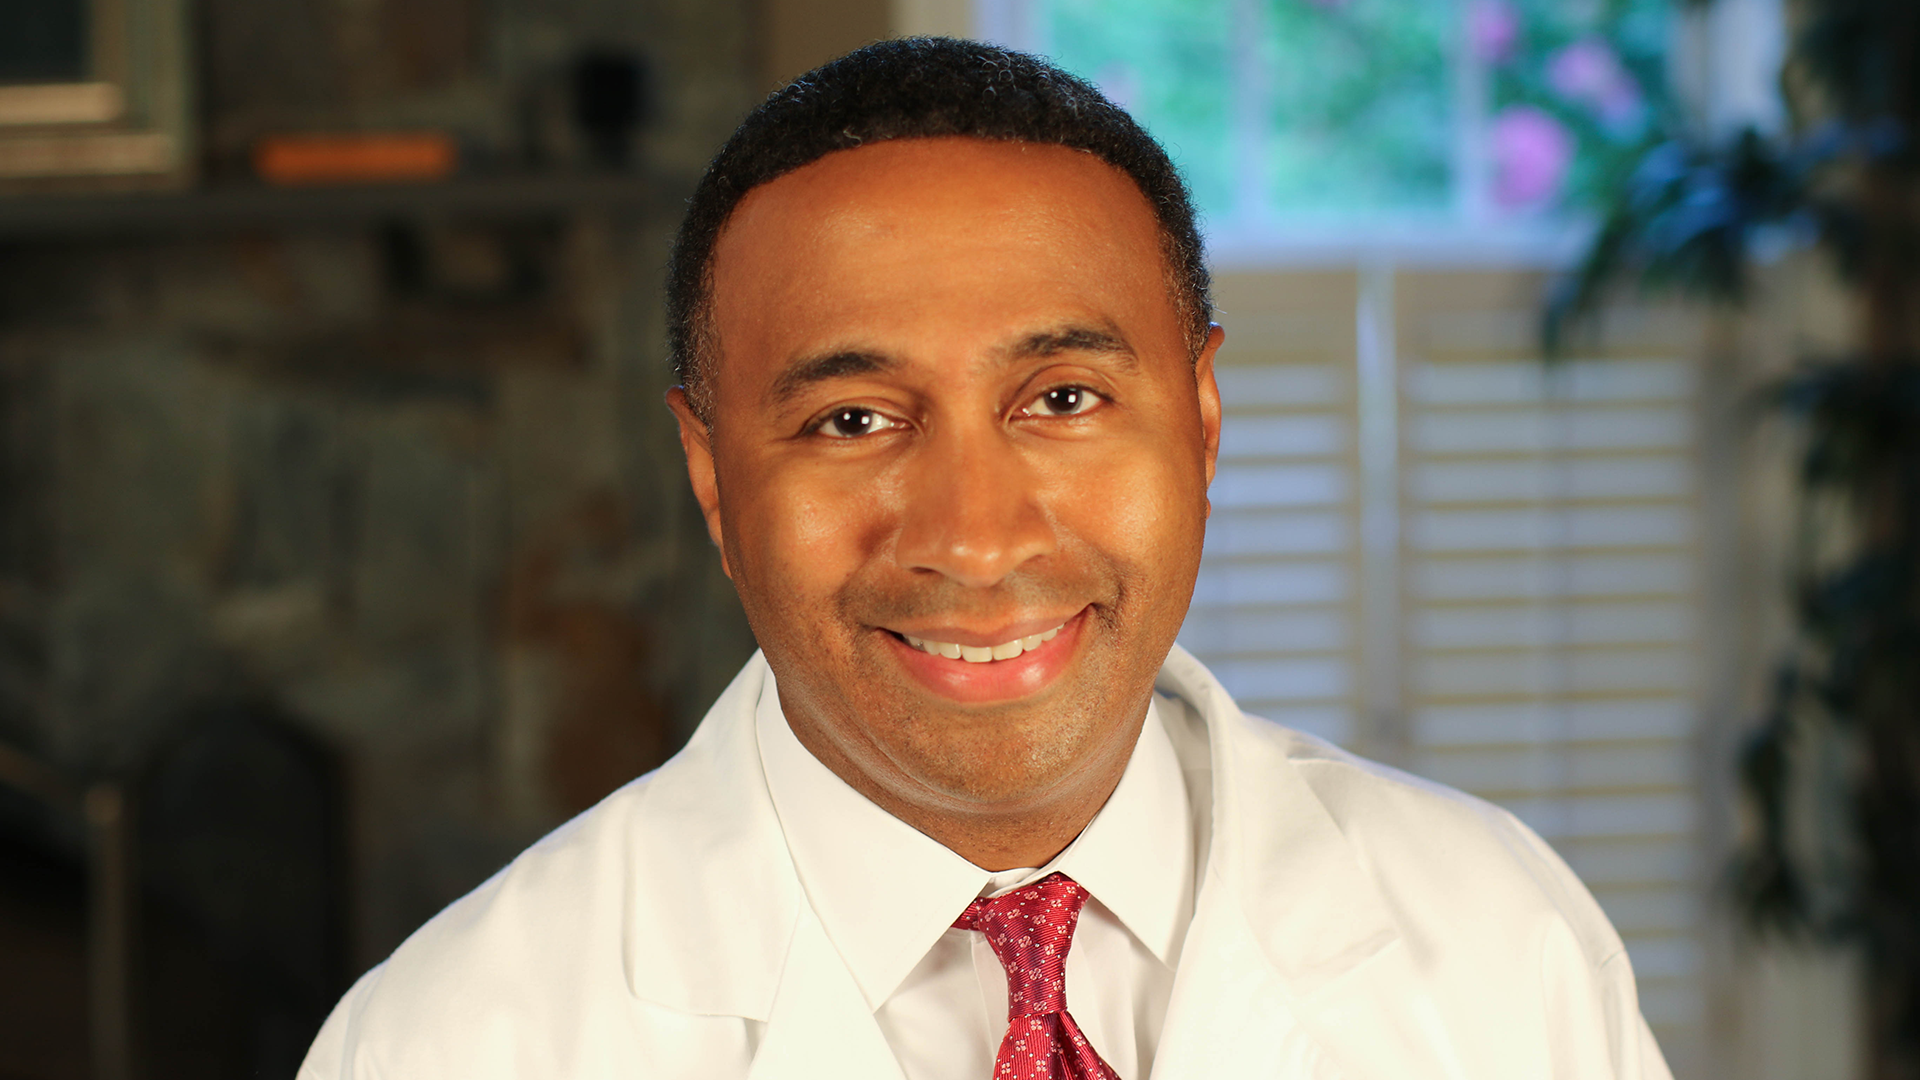 Dr. Hassan Tetteh: It Took Perseverance to Keep Going — Photo Credit: Shefik